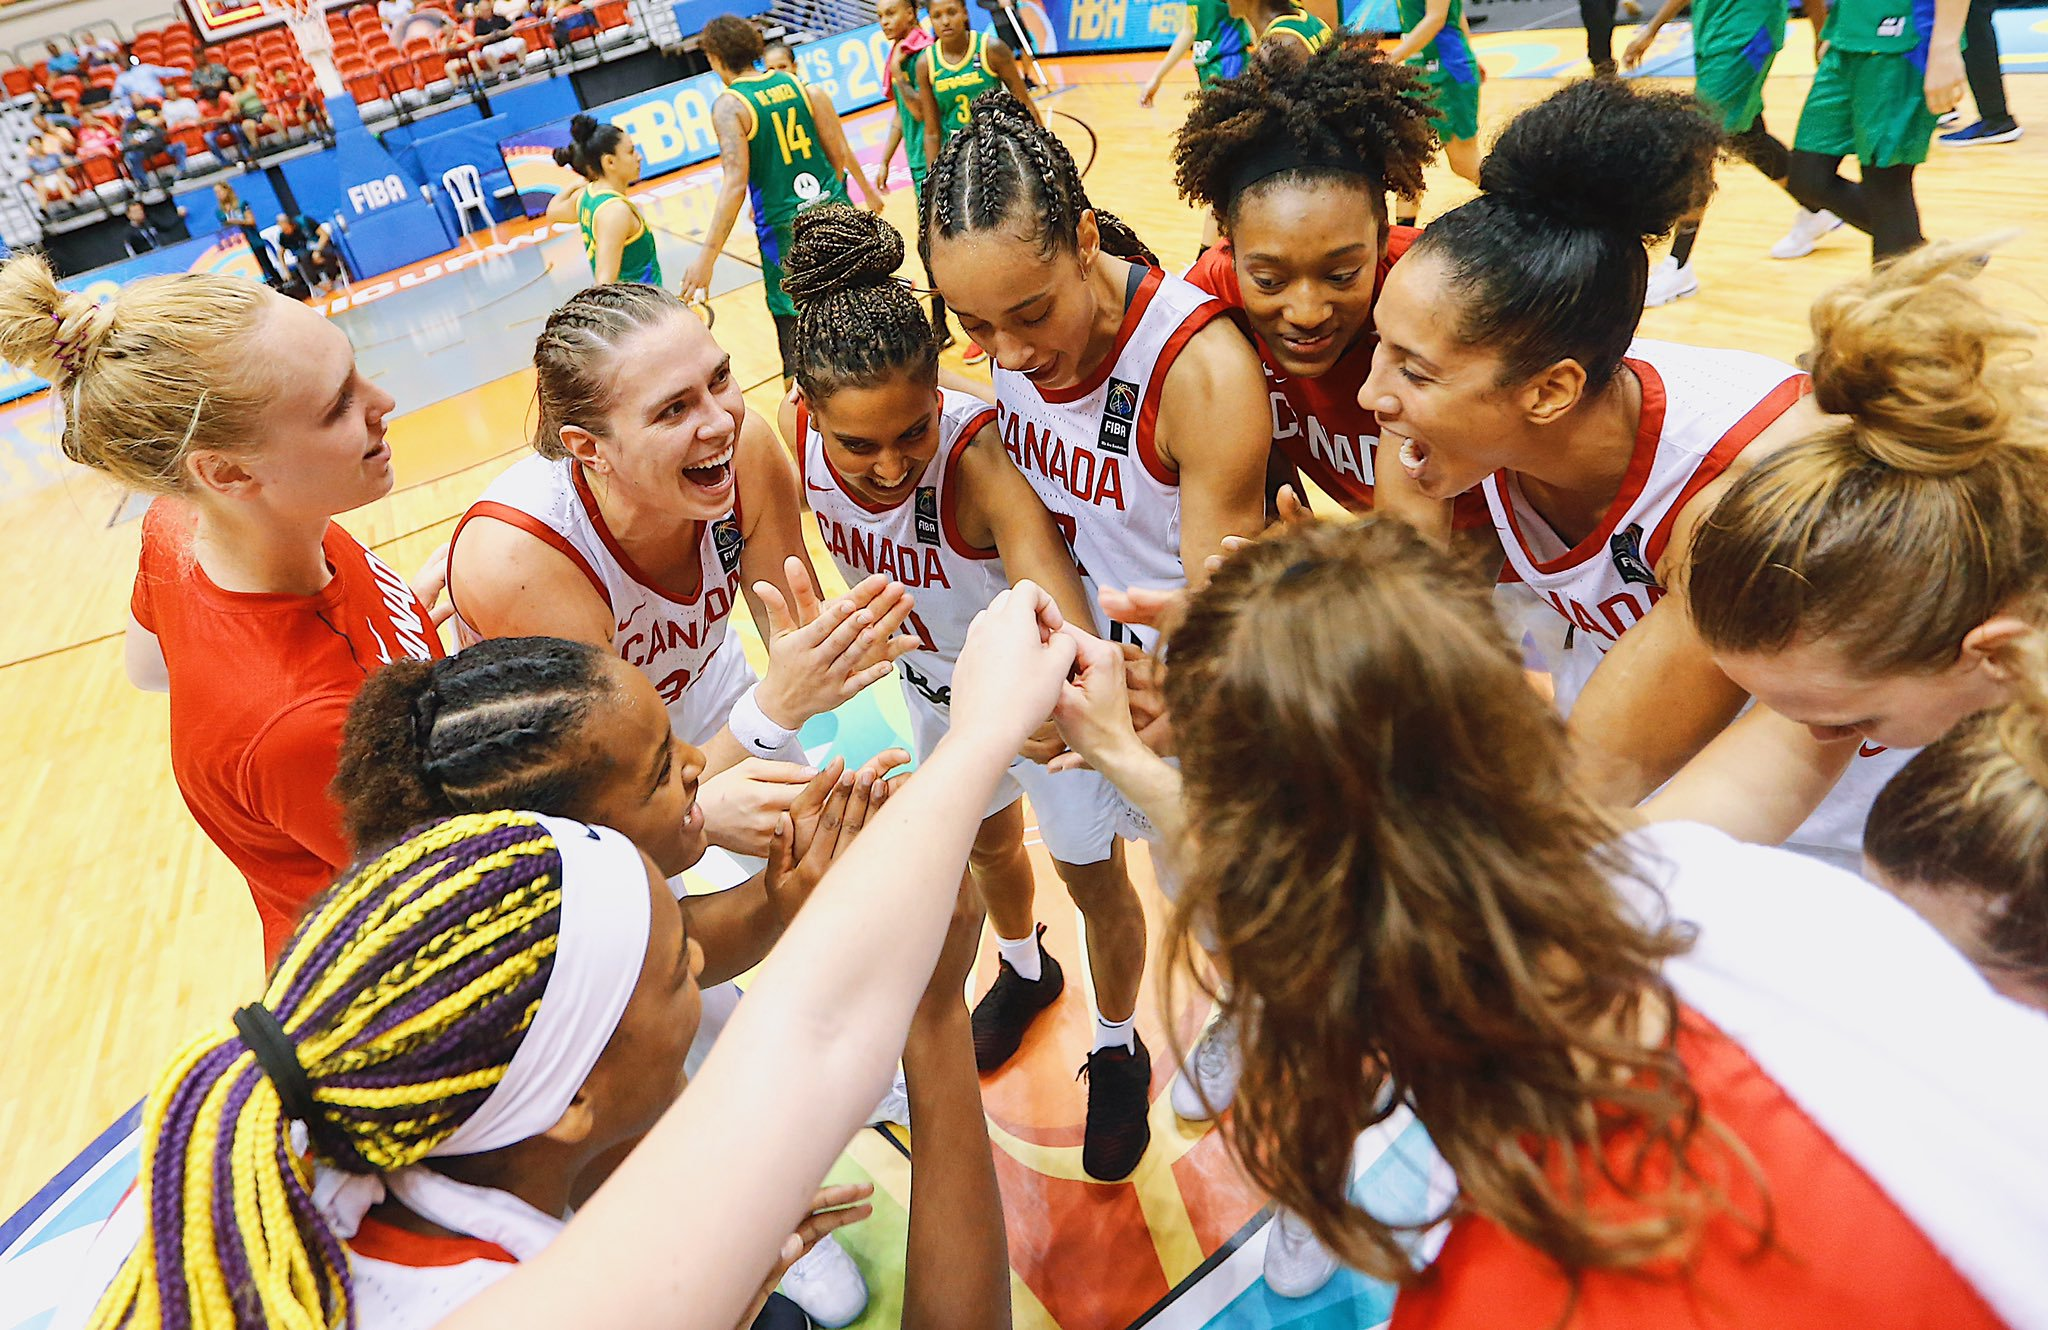 Canada advances to the FIBA Women's Americup Finals after a tough battle with Brazil